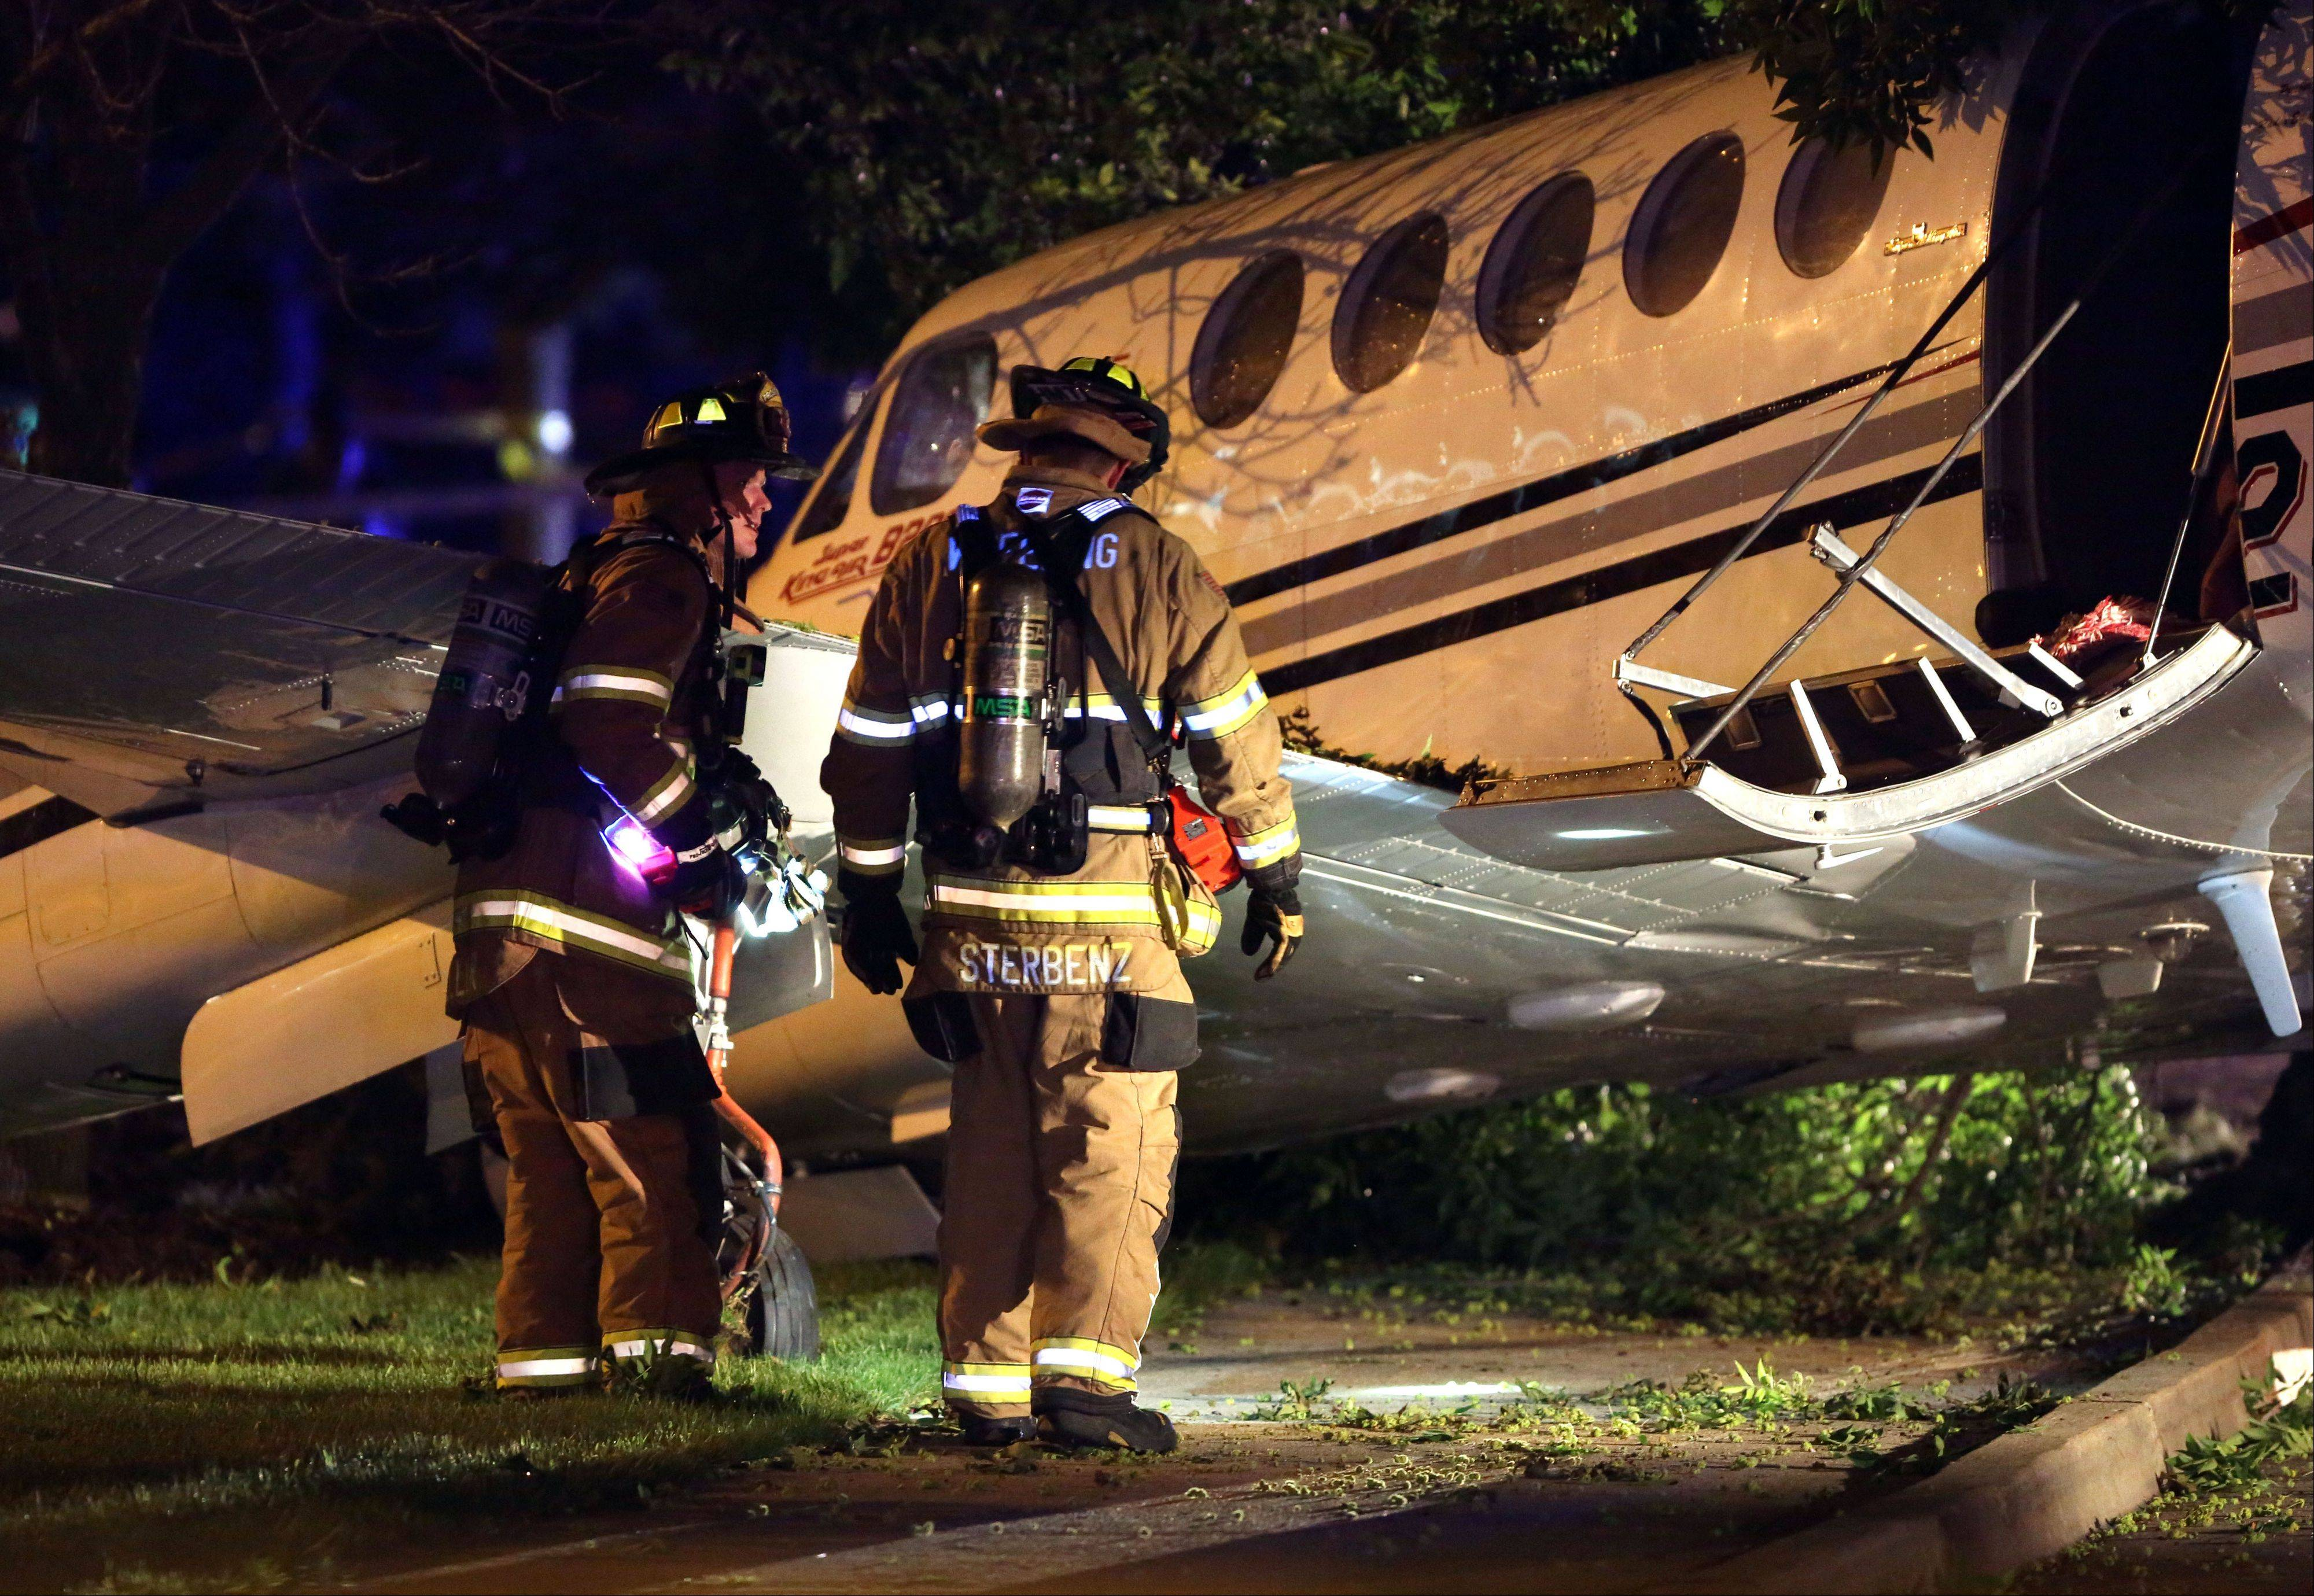 Firefighters investigate a plane that crashed on Wolf Road in Wheeling near the Foxboro Apartments Tuesday night.